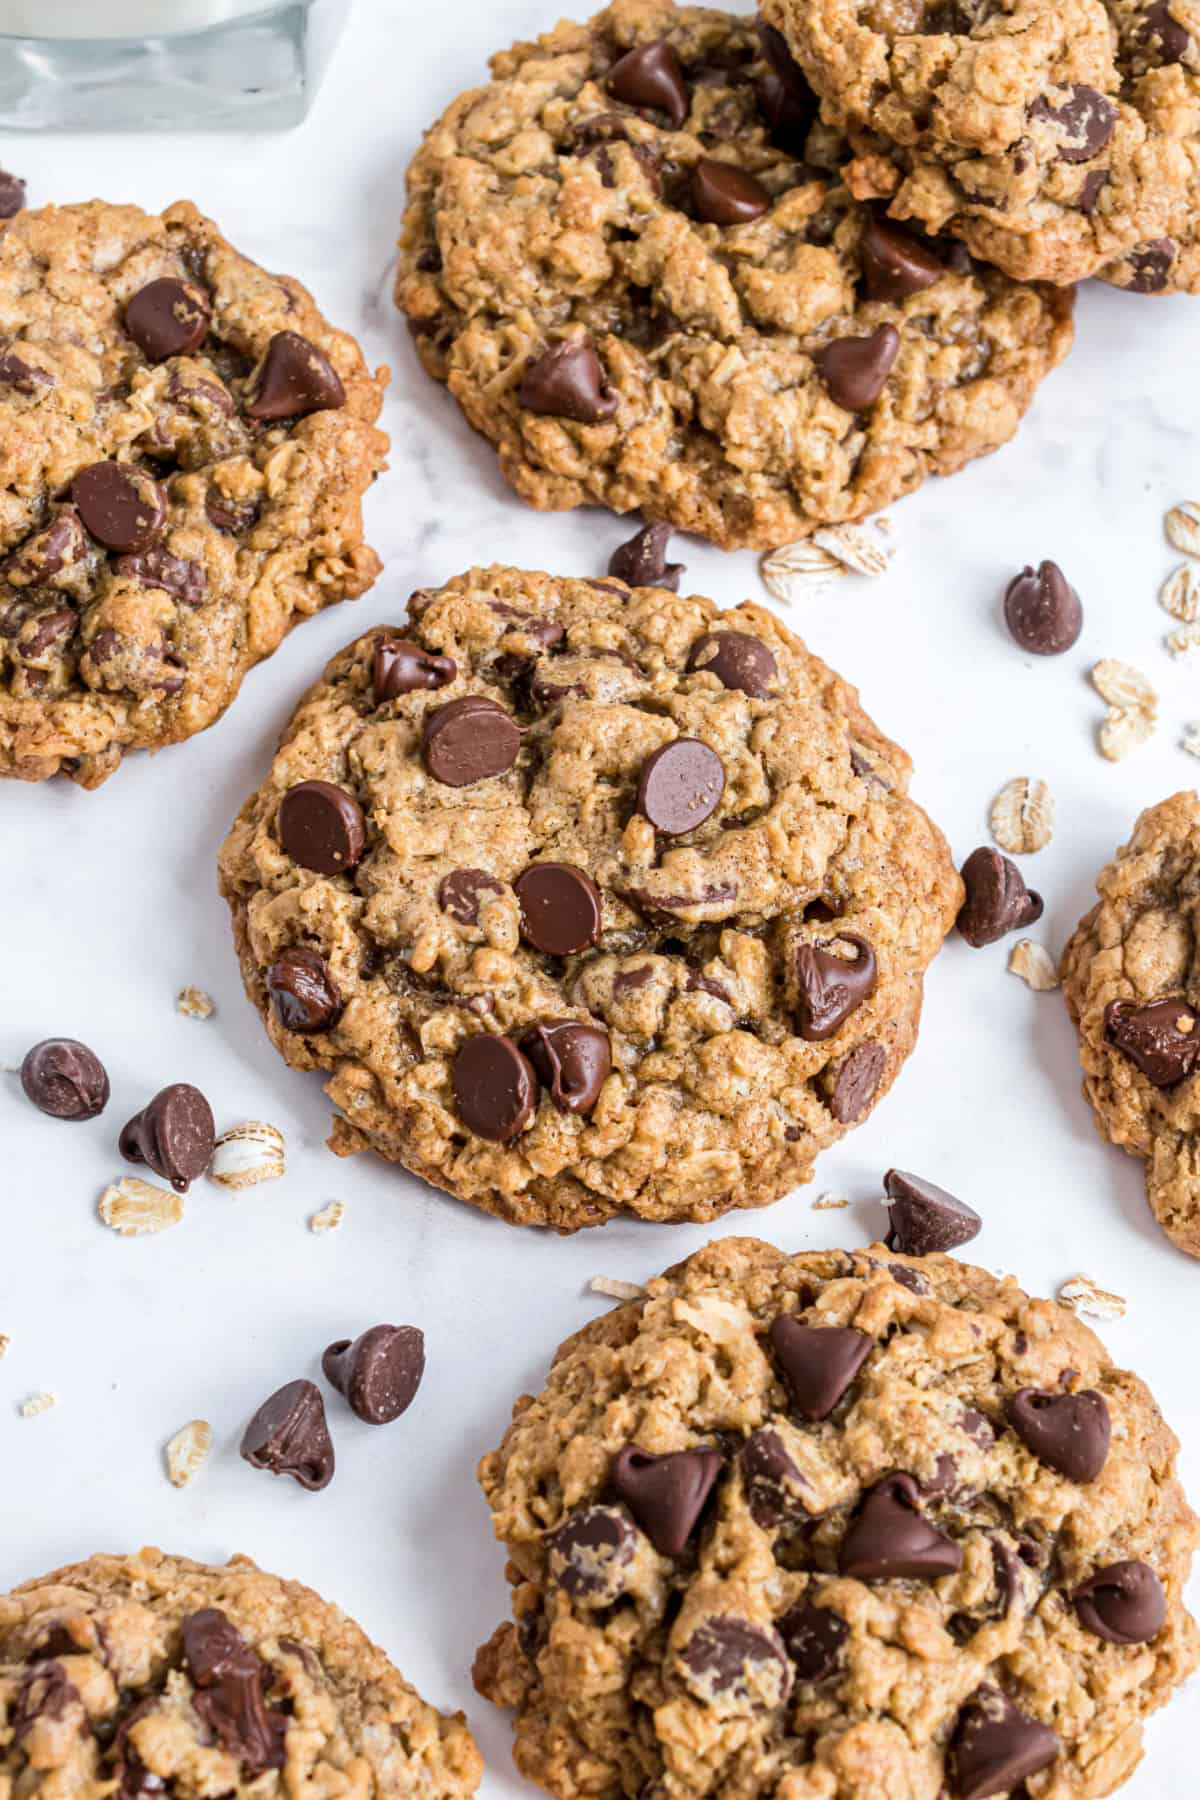 Oatmeal chocolate chip cookies on parchment paper.